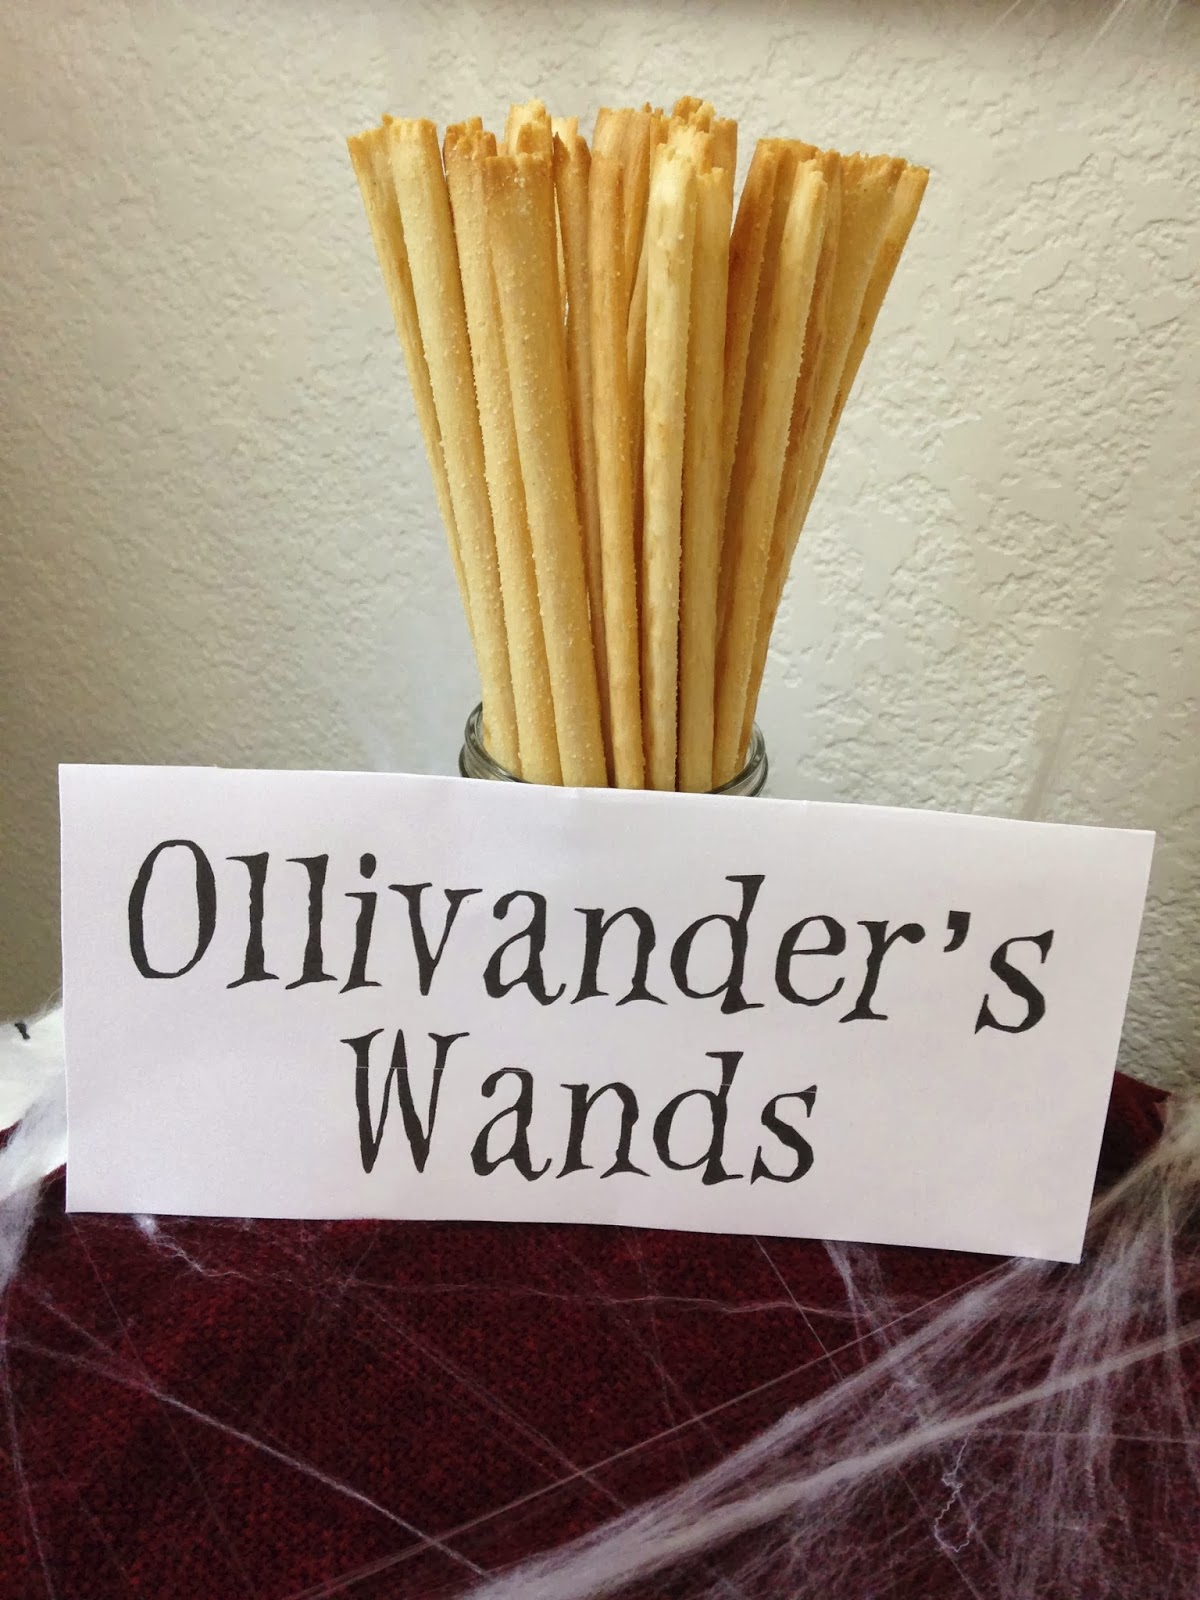 Dating the page of wands